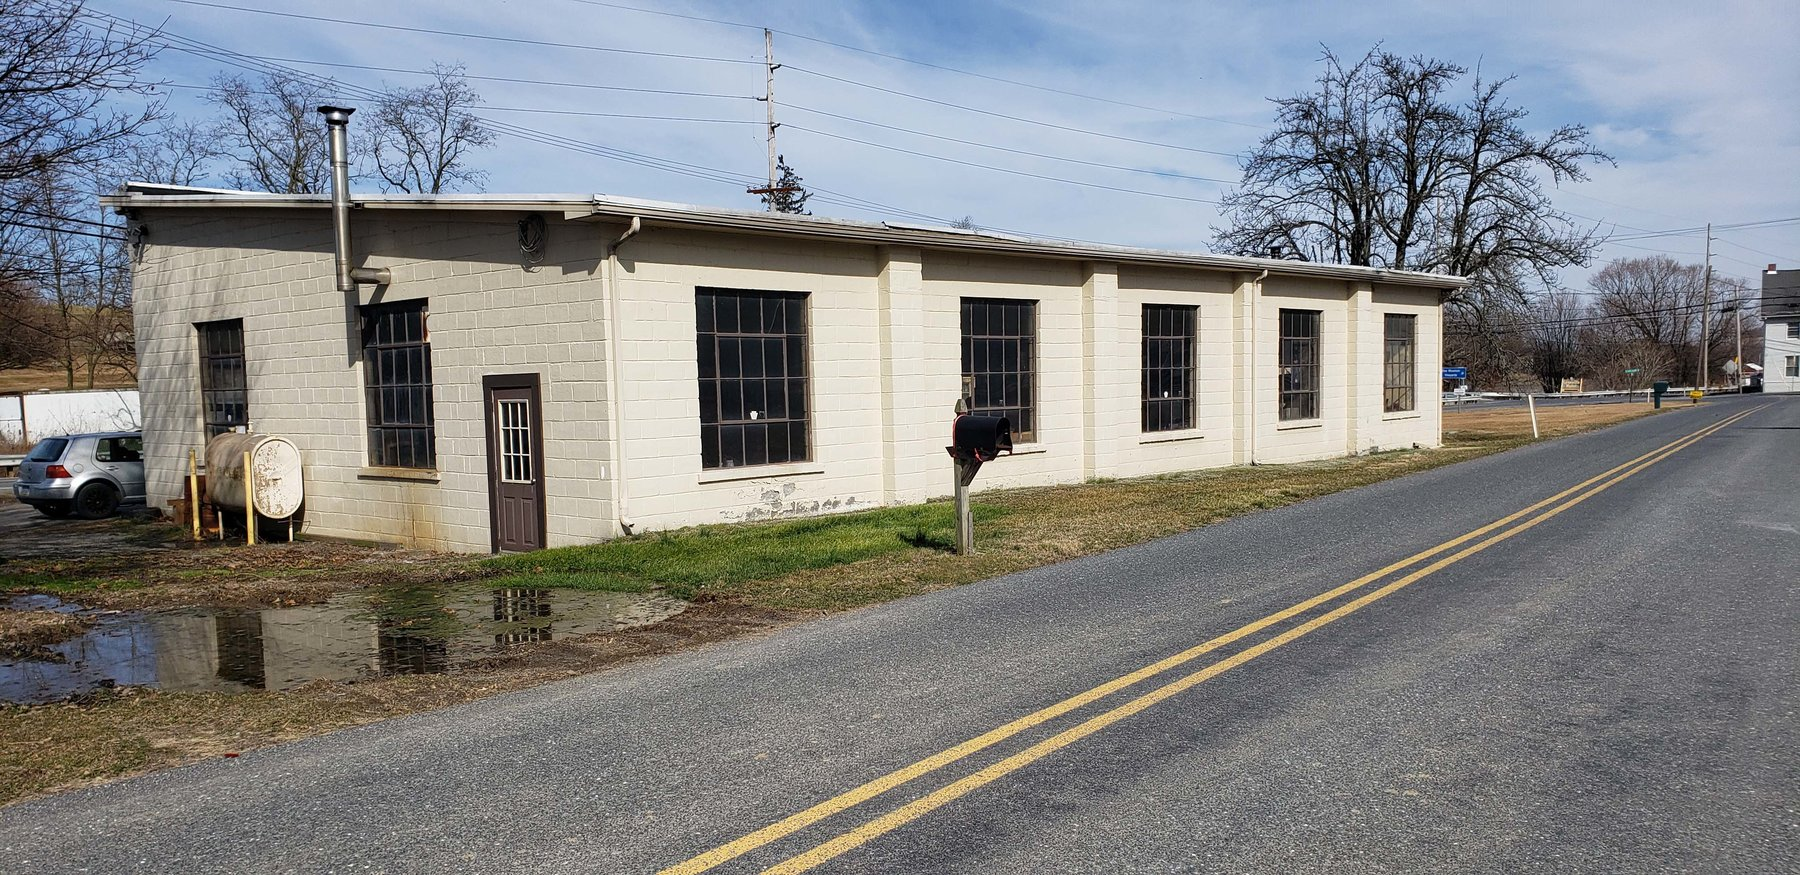 Commercial Real Estate Private Showings - By Appointment Only | 8408 Kistler Valley Road, New Tripoli, PA 18066 | July 19 and 23, 2020